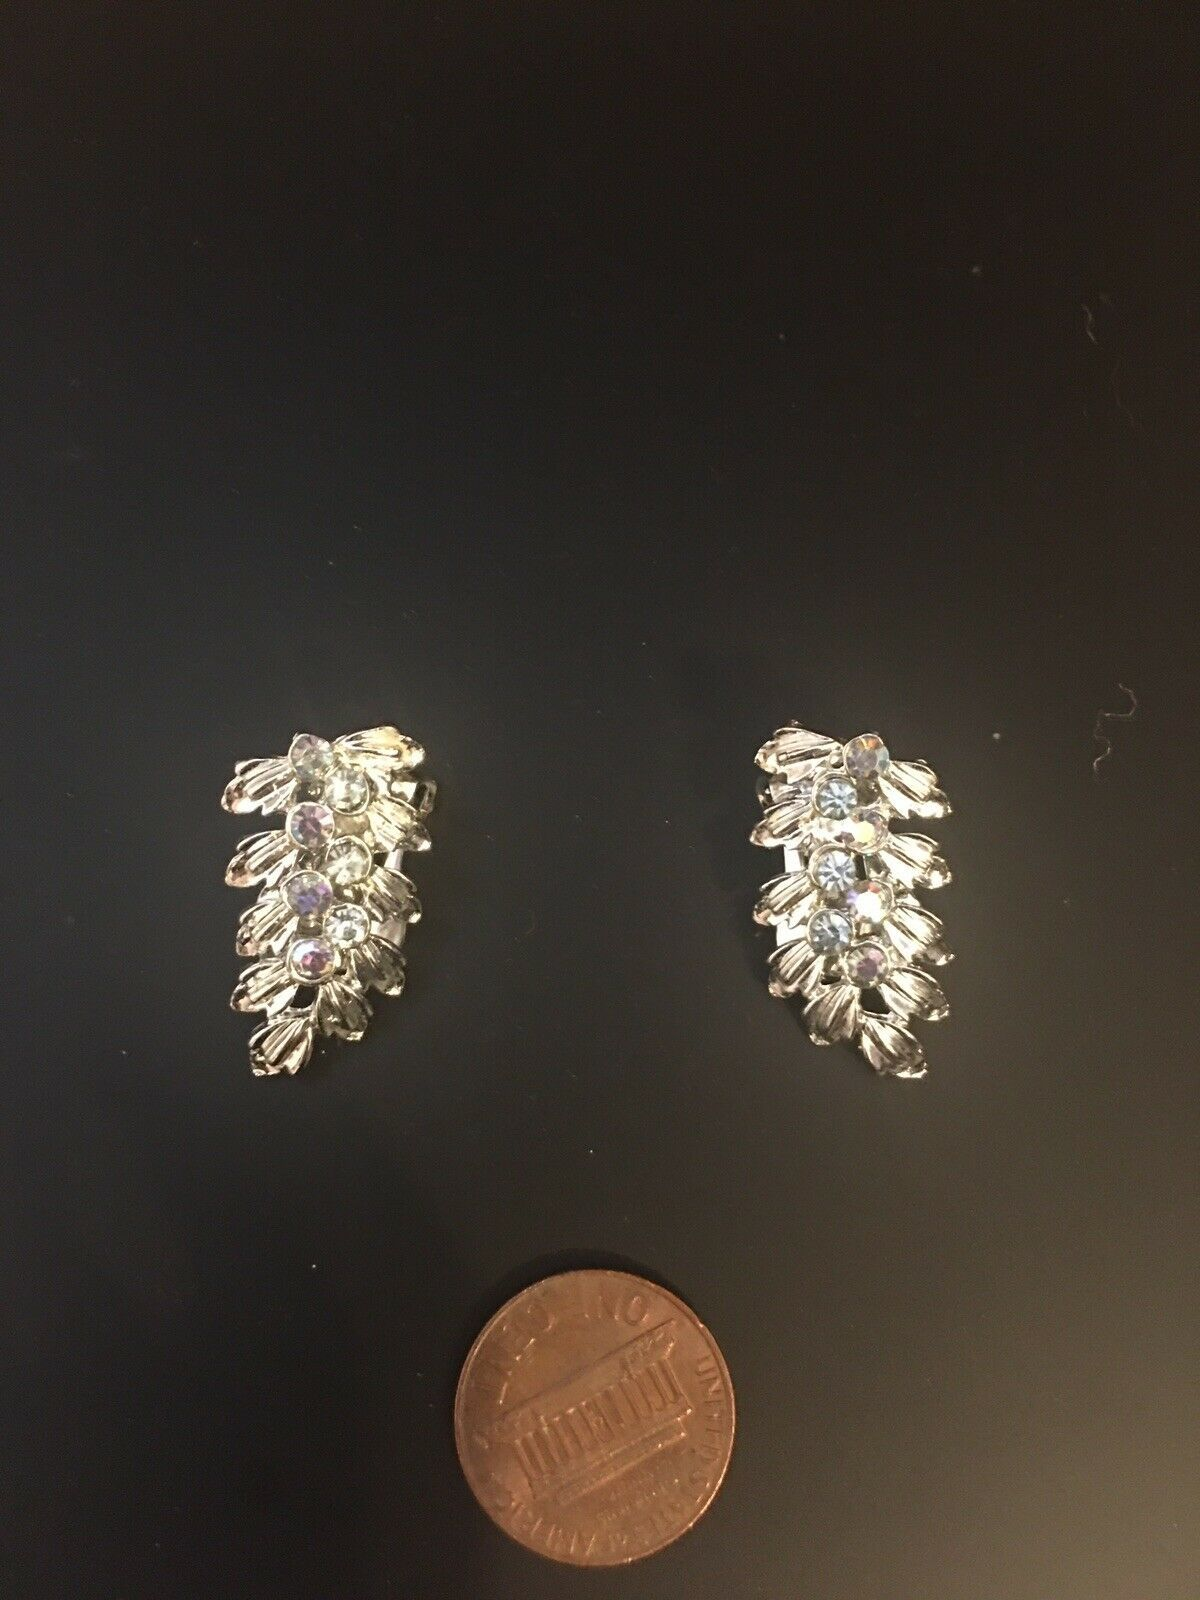 Primary image for Vintage Silver Tone Leaf Shape Crystal Rhinestone Clip On Earrings